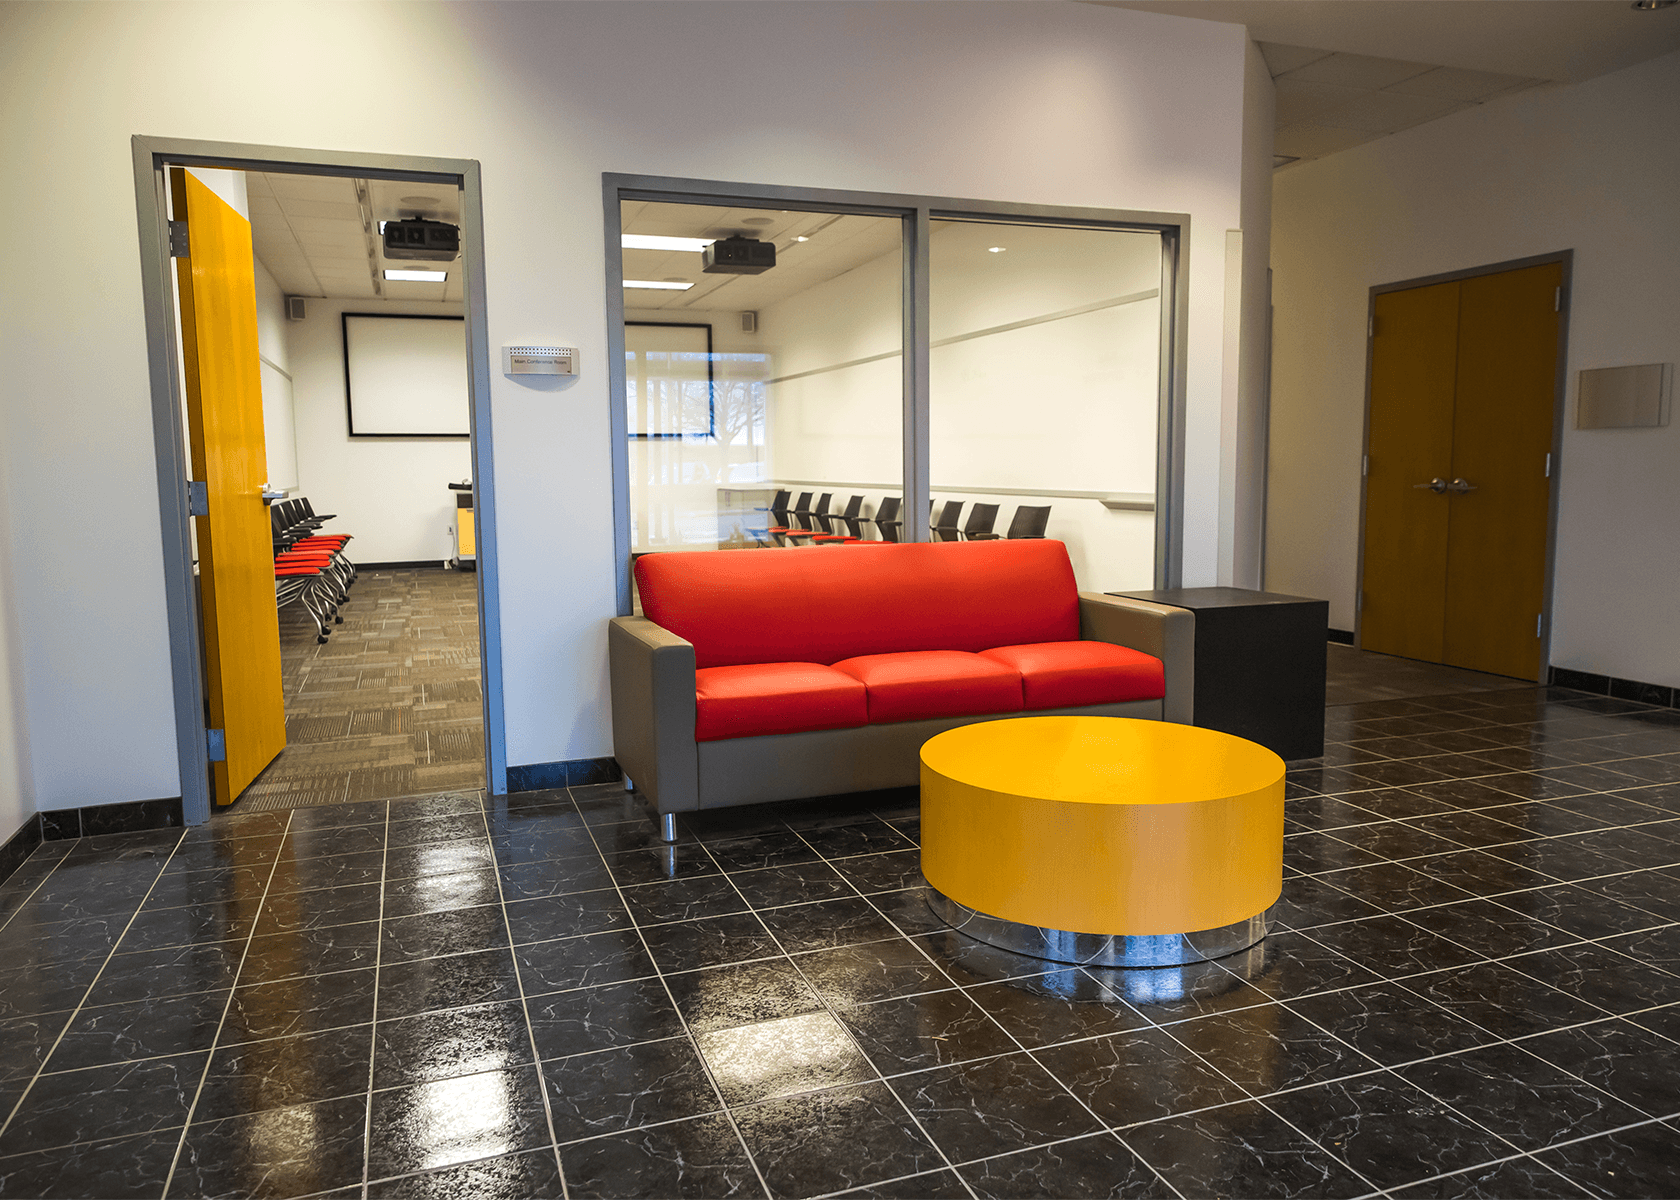 lobby area with a bright red couch and a yellow coffee table